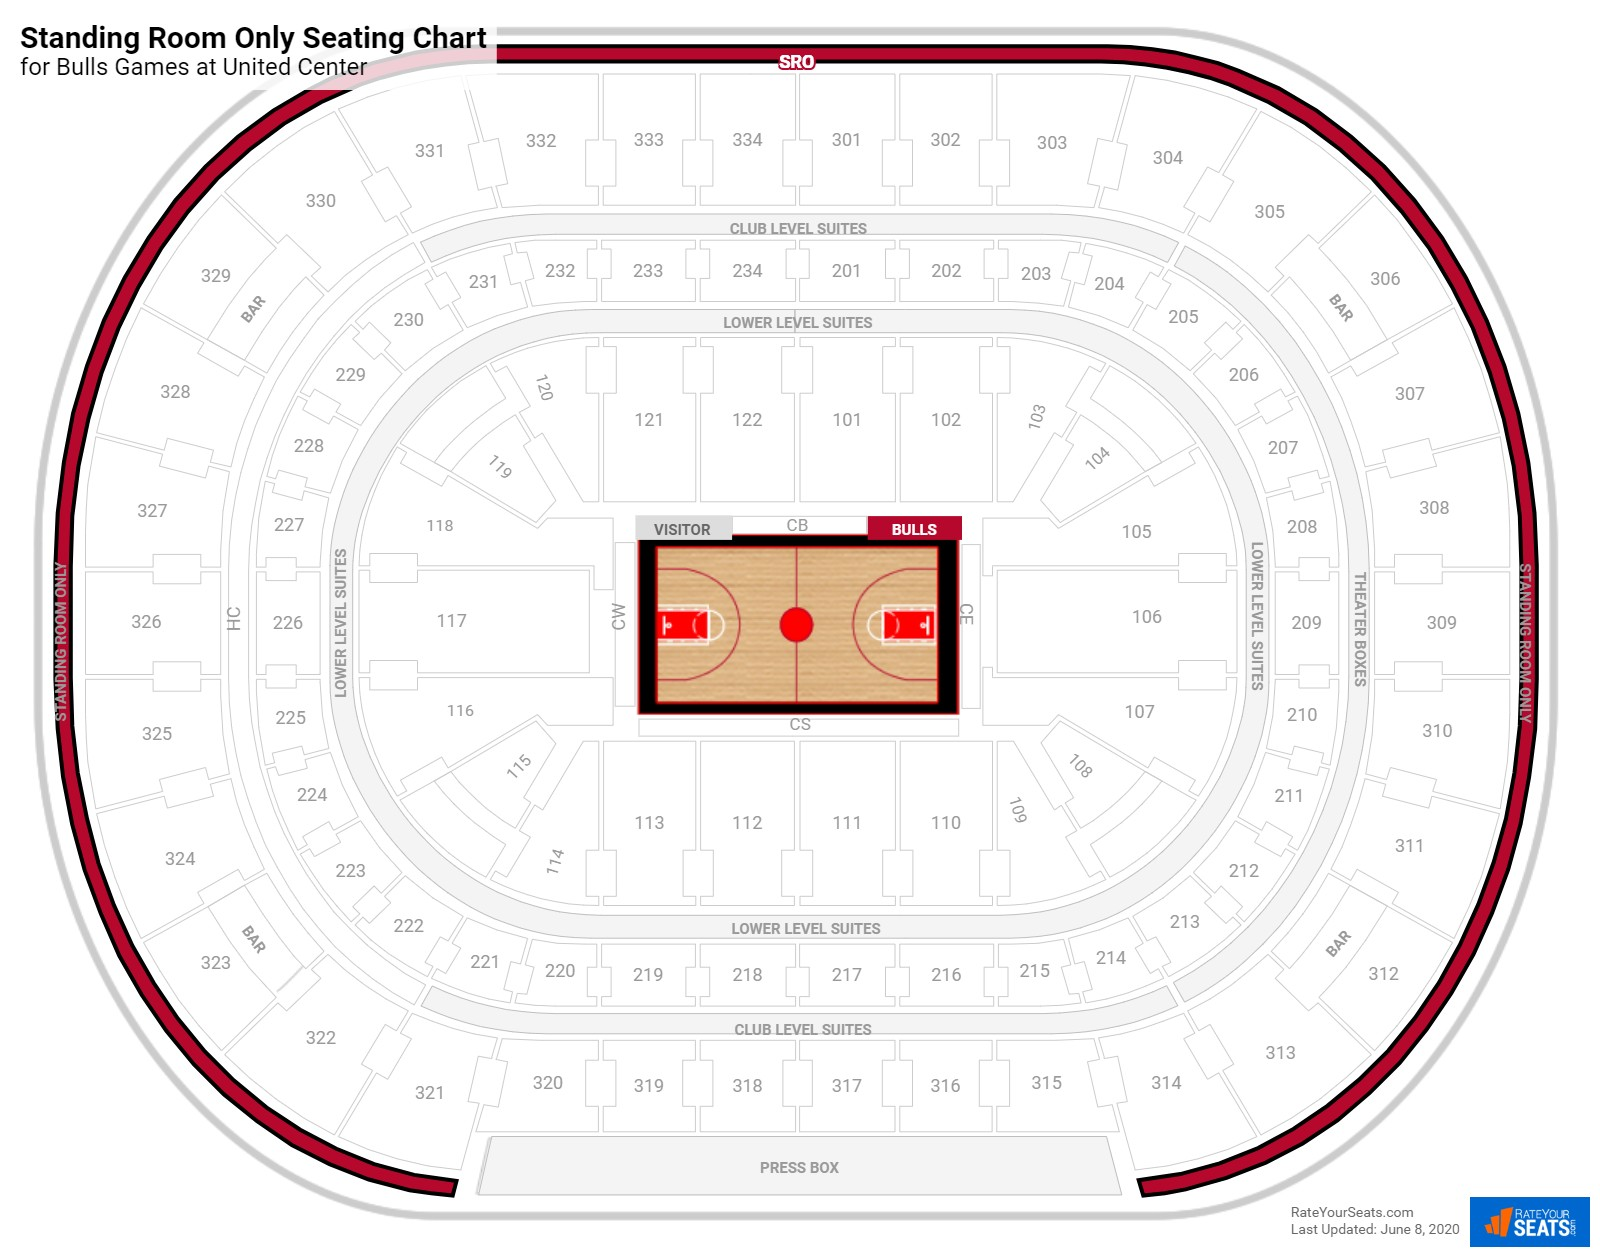 United Center Standing Room Only seating chart